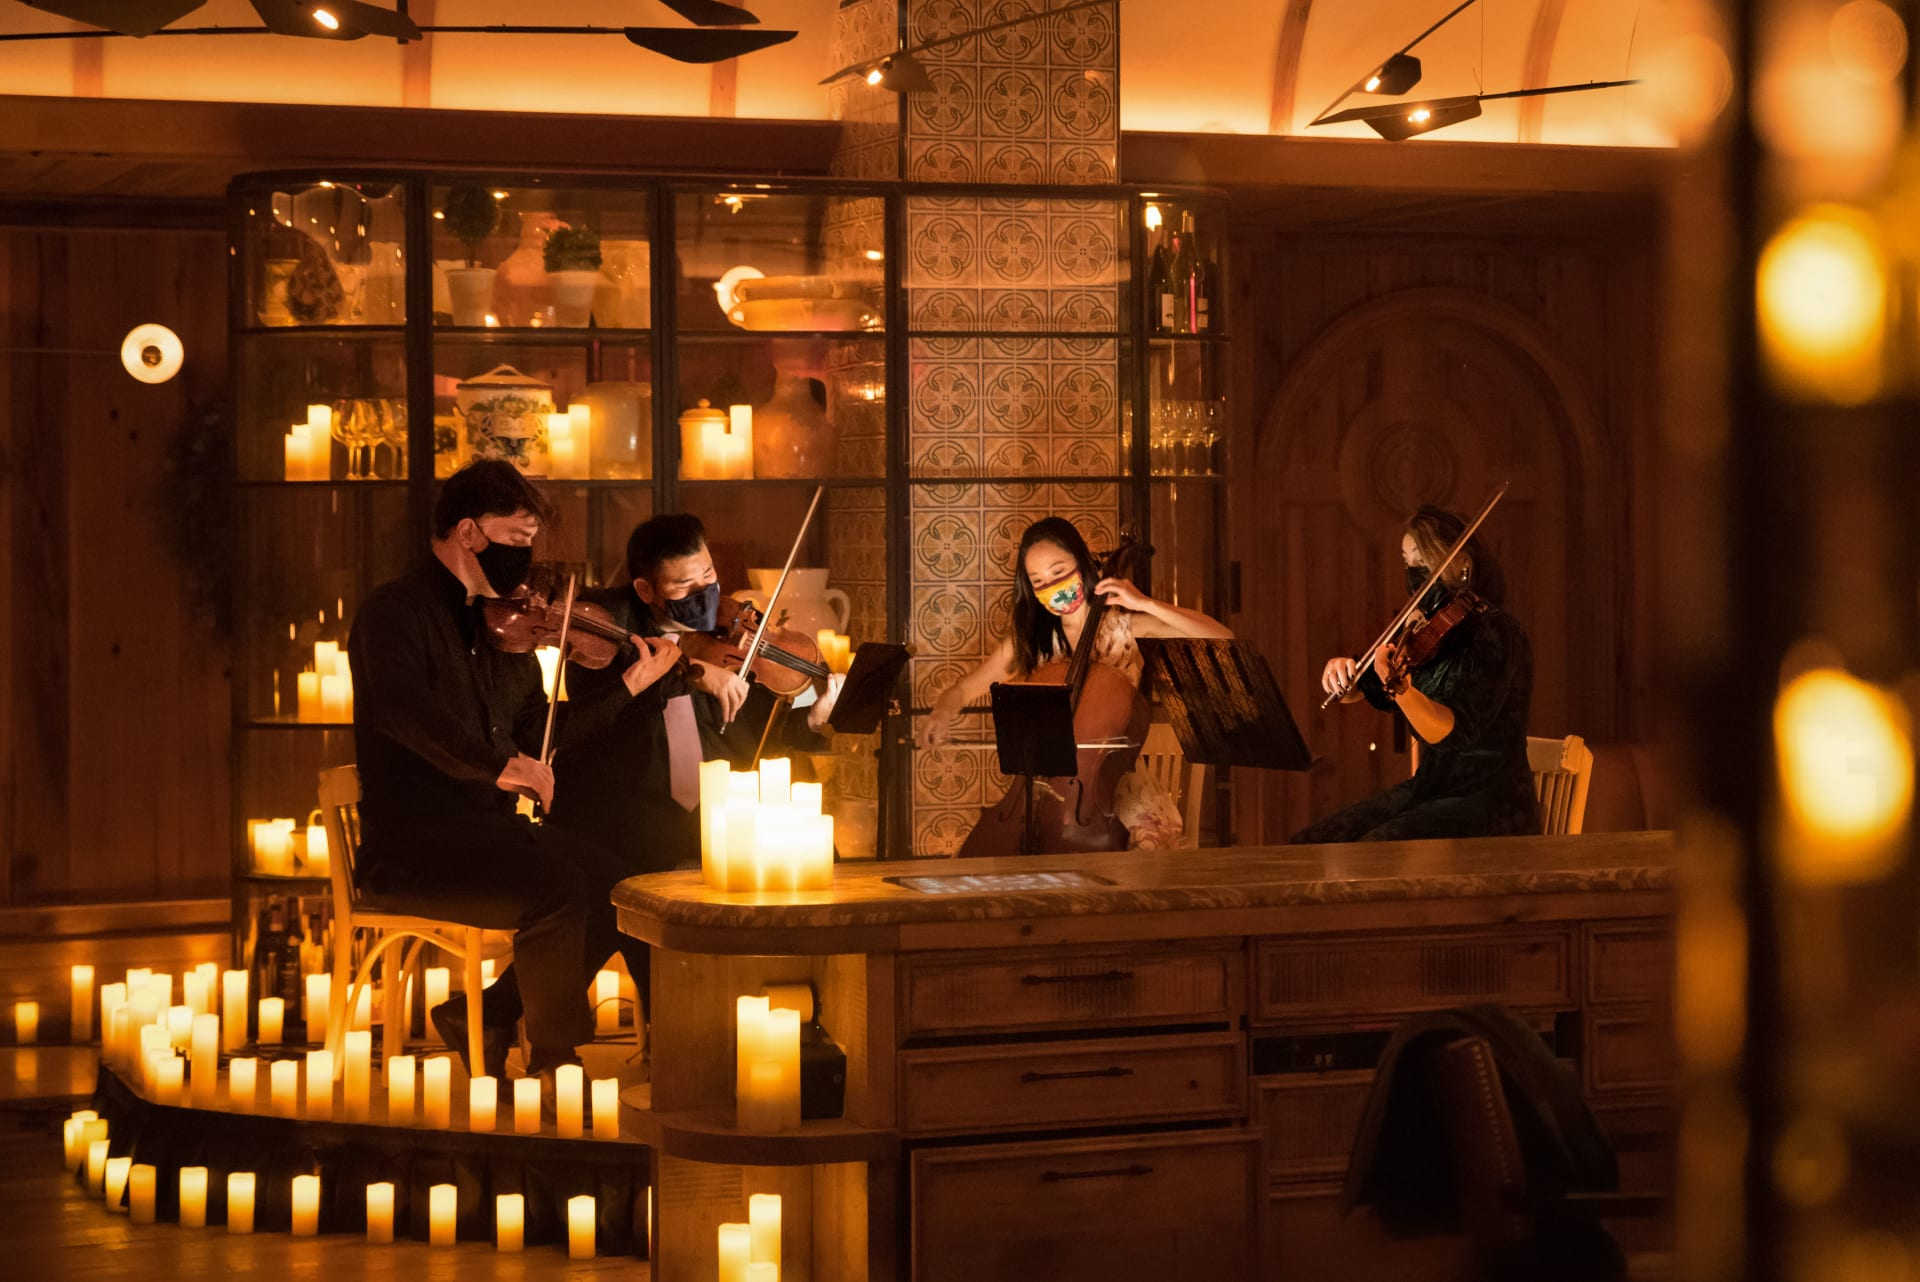 Candlelight Dinner at Leuca: Holiday Special featuring Tchaikovsky and Vivaldi